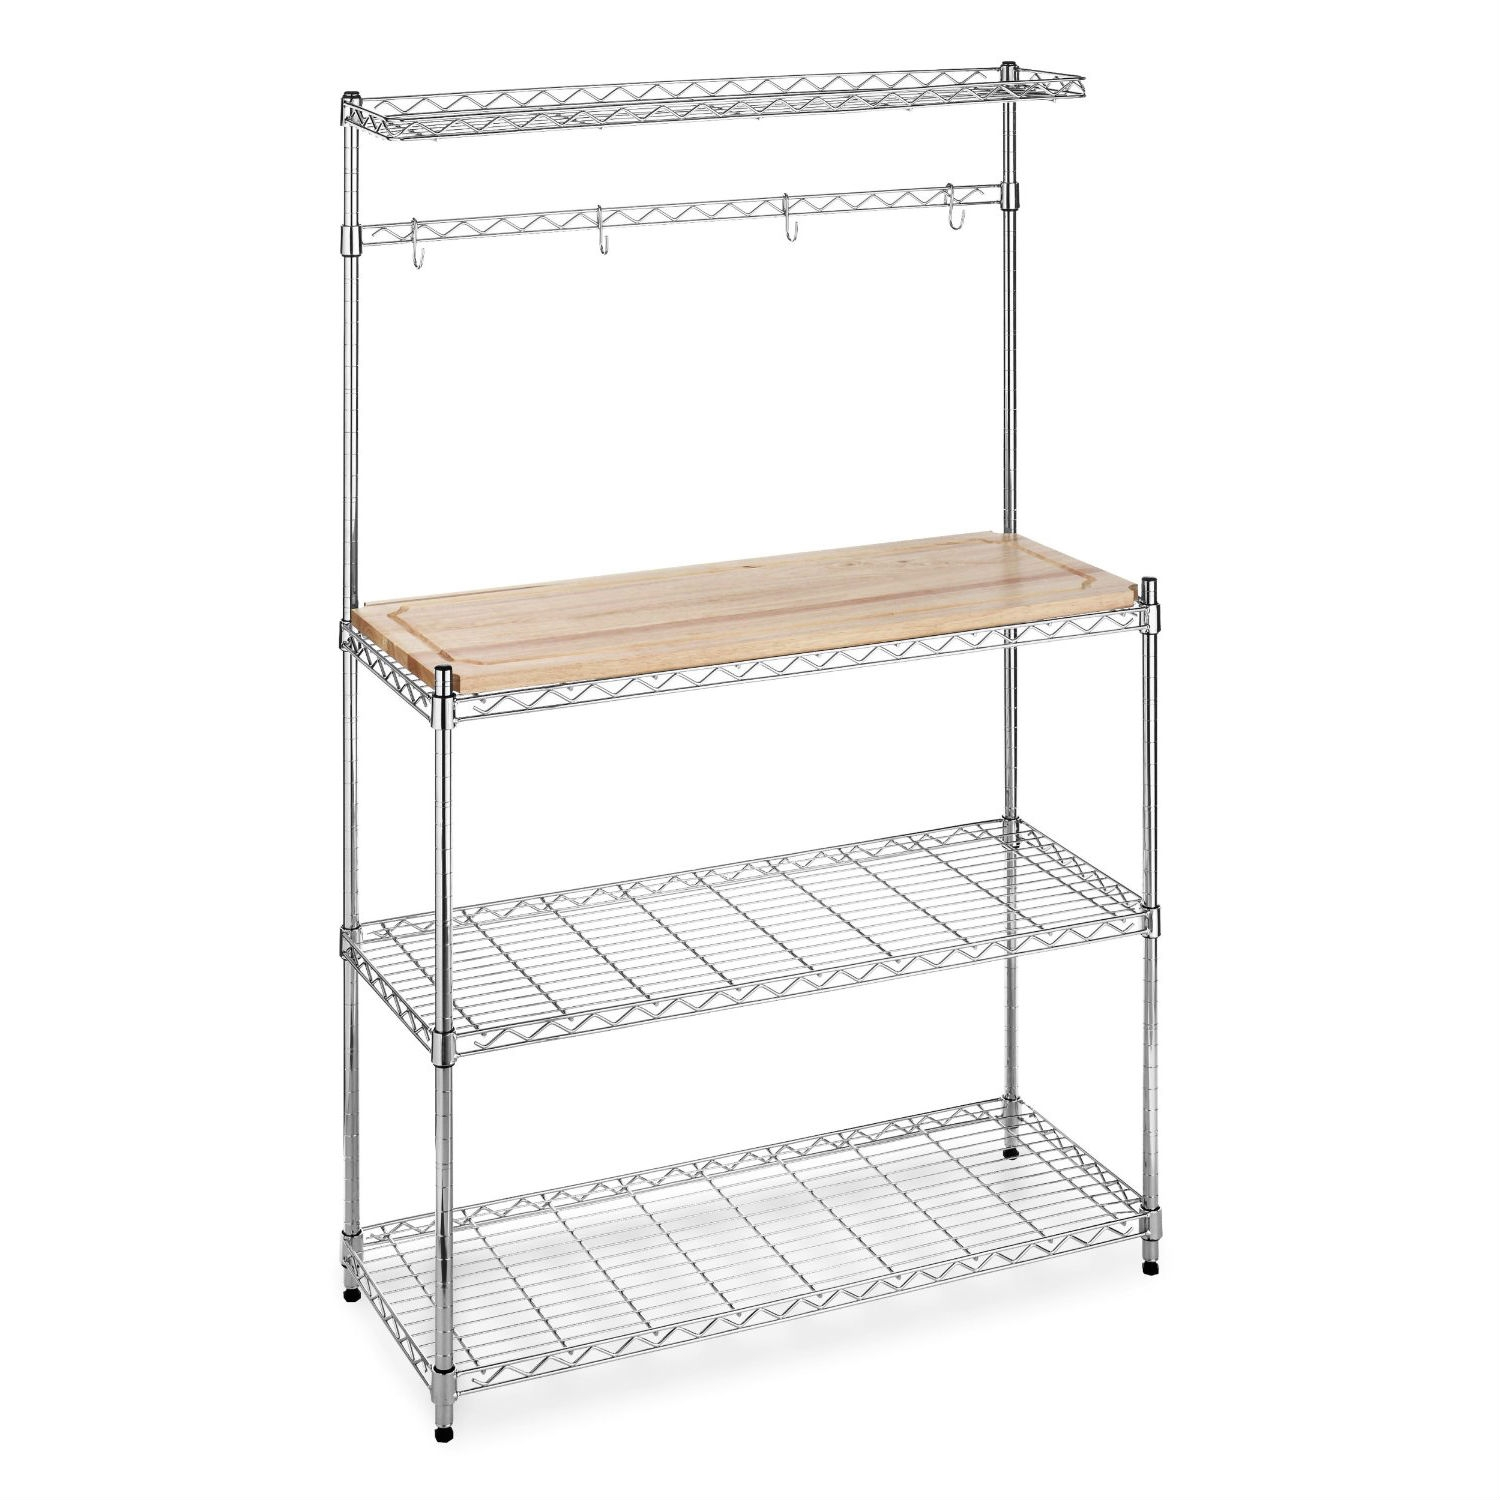 Hanging Bakers Rack Kitchen Creativeworks Home Decor Bakers Racks